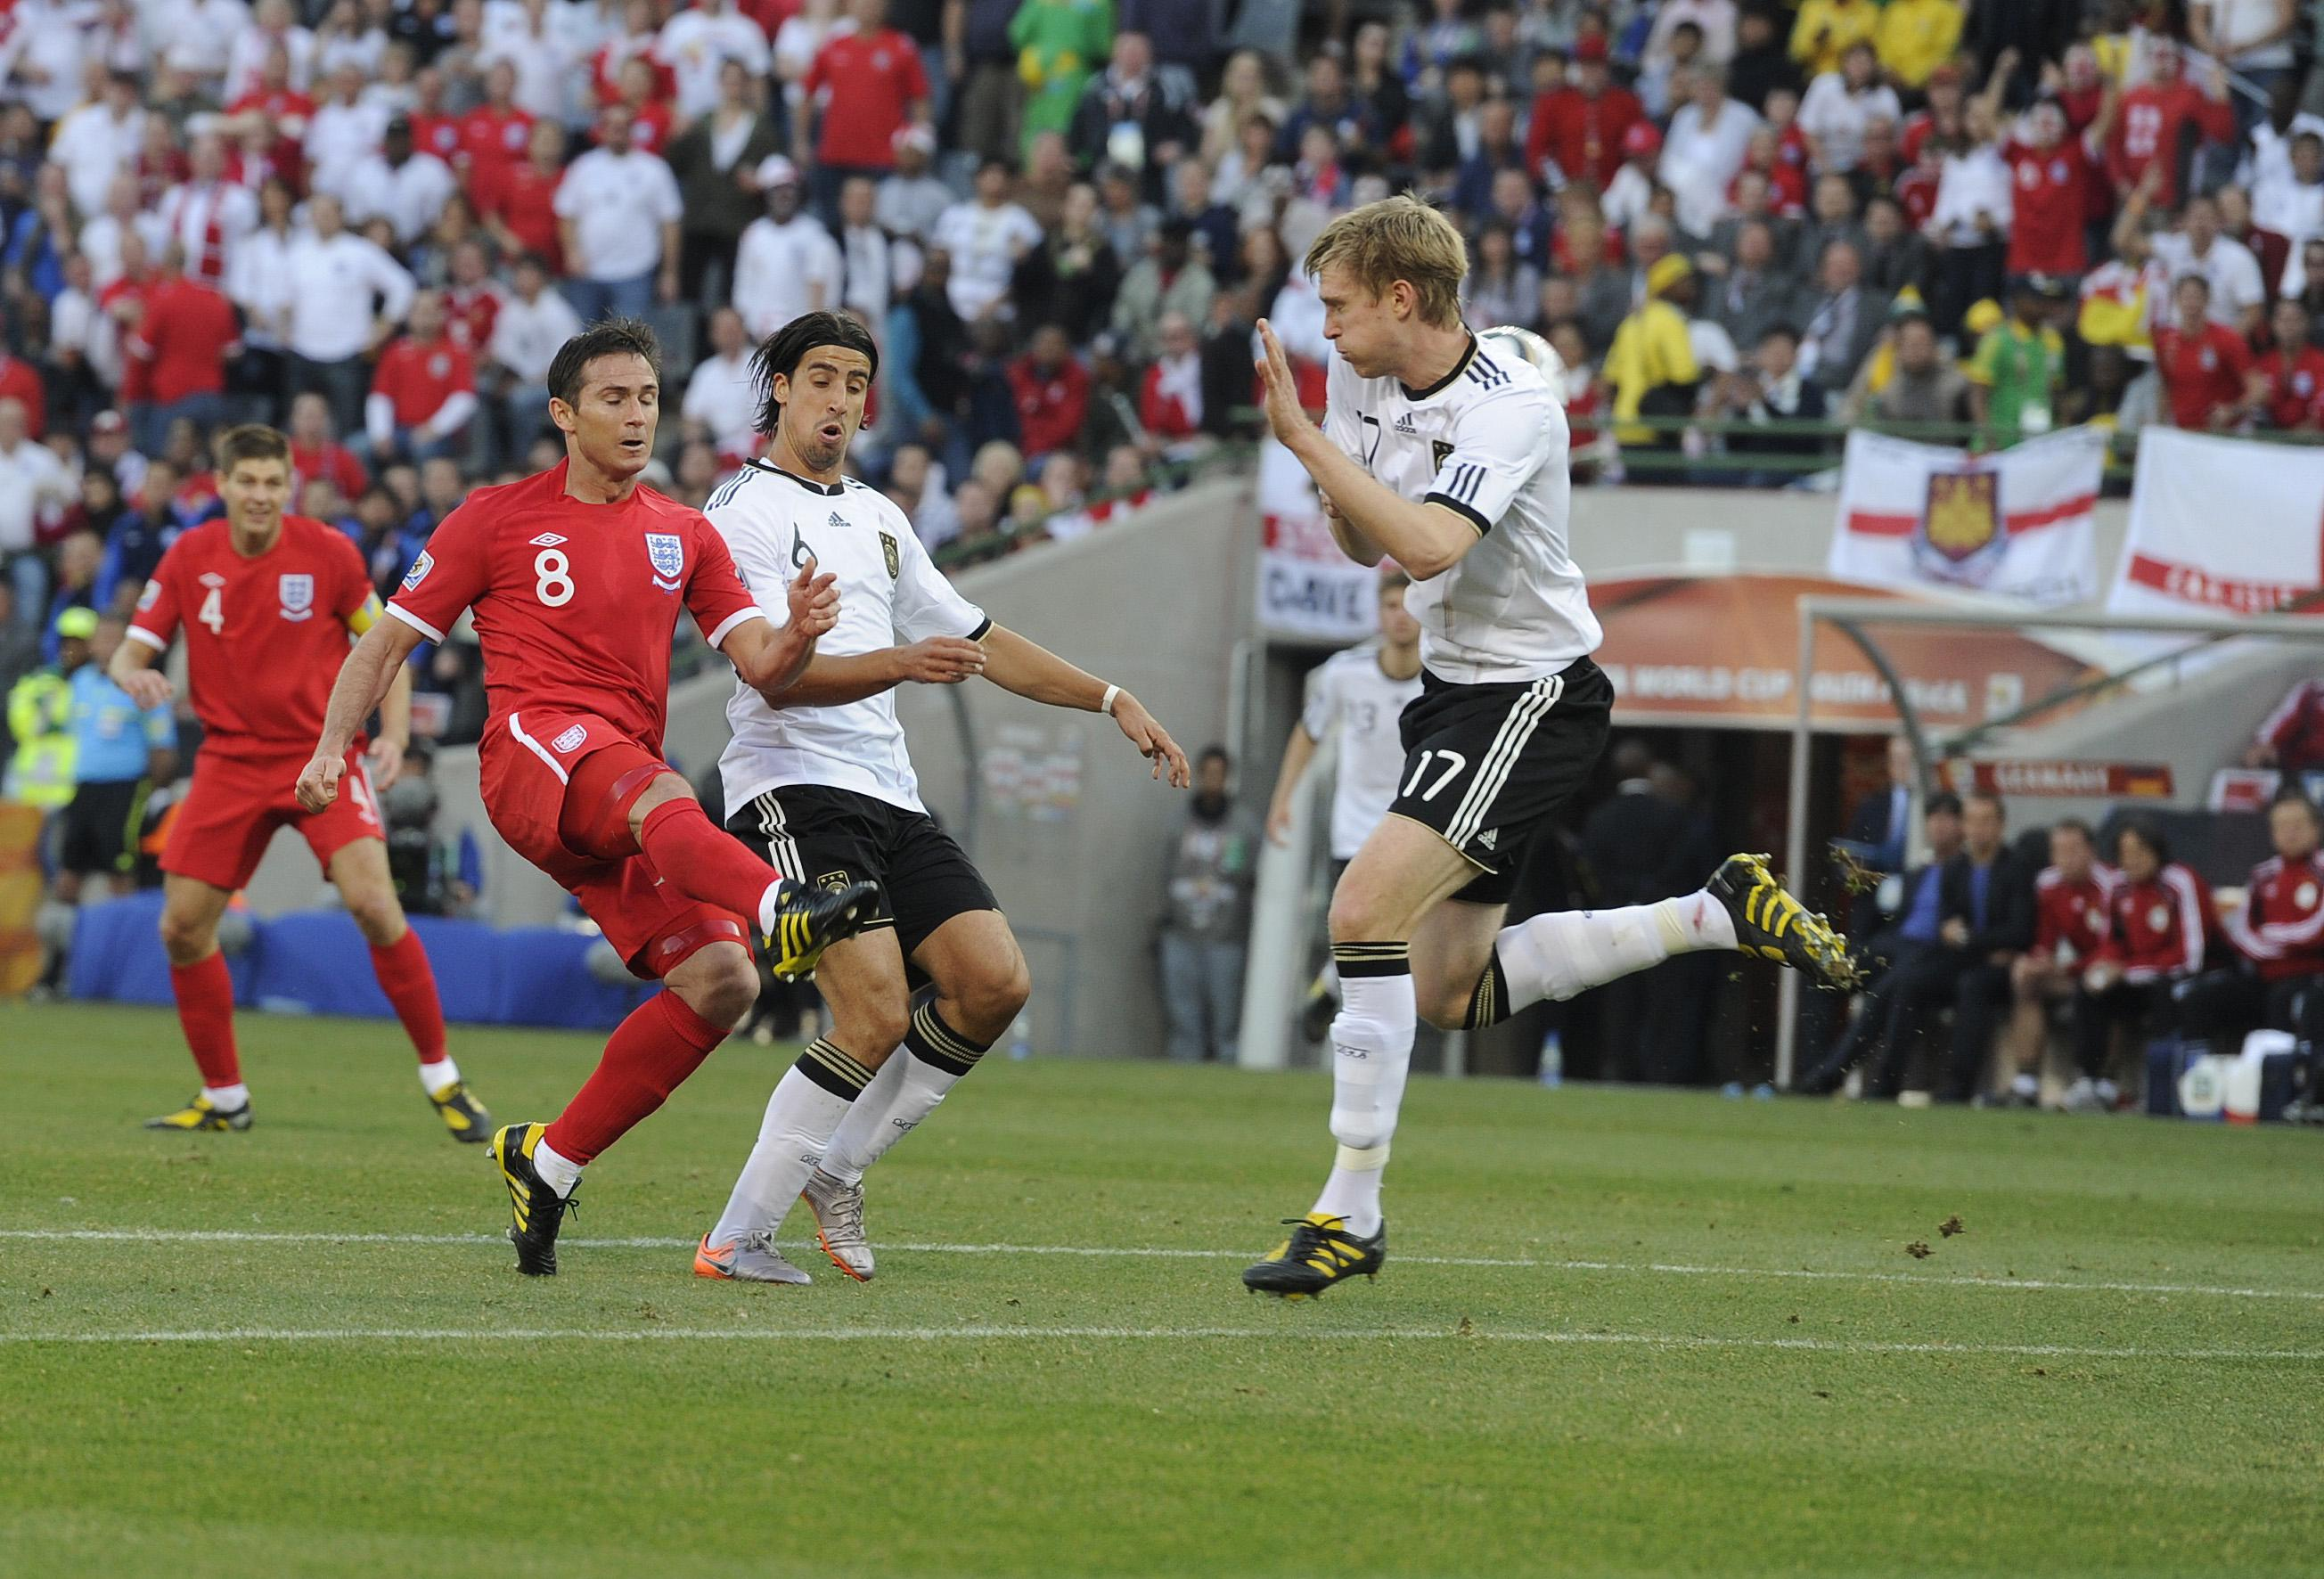 Back in 2010 against Germany Frank Lampard scored a beauty - but it never actually counted